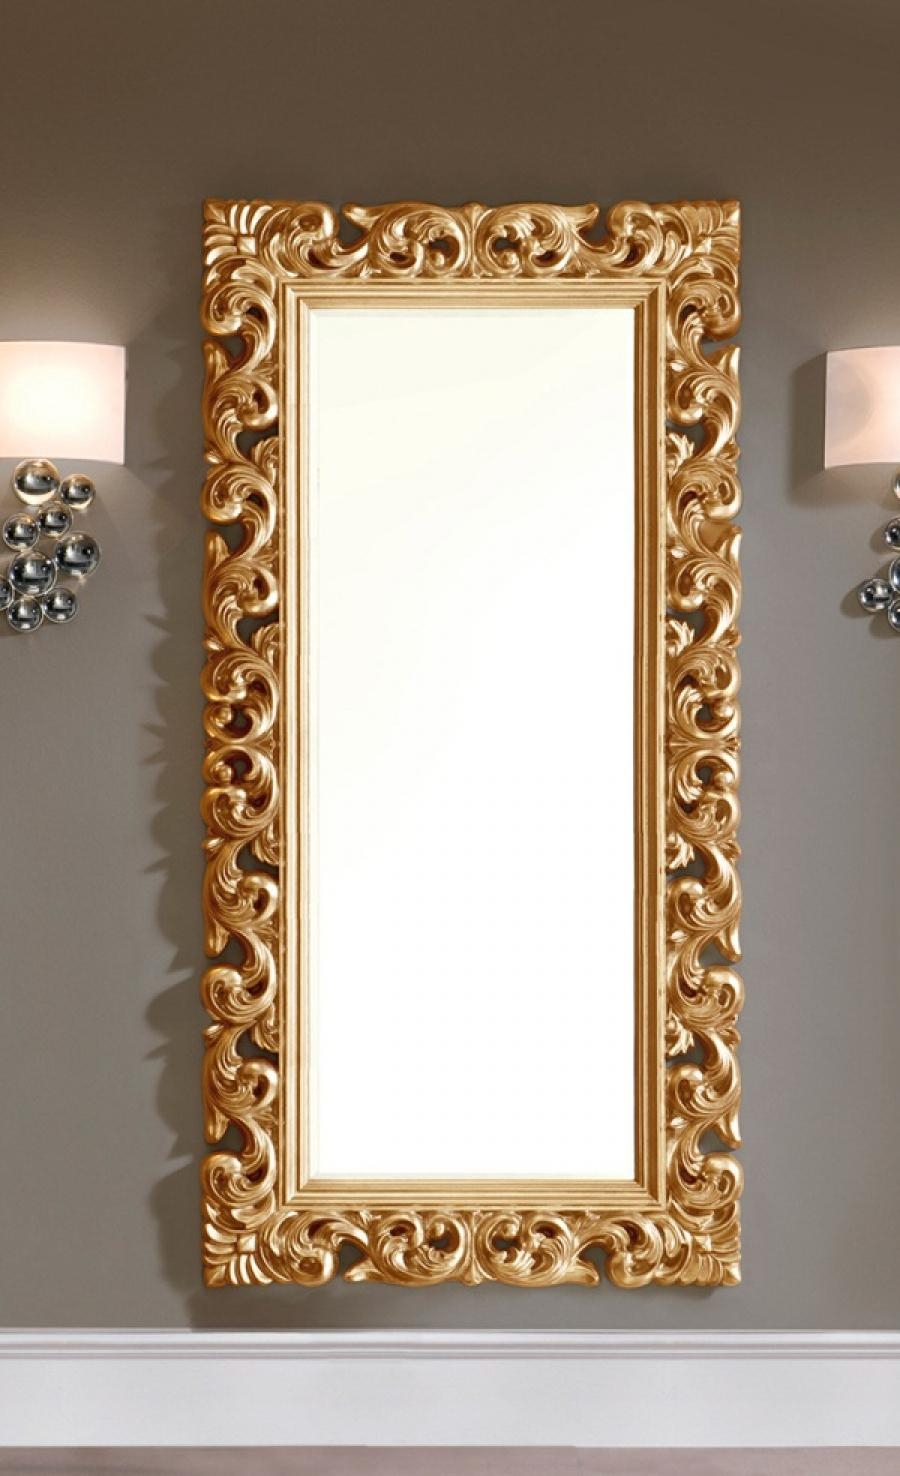 Large Modern Ornate Mirror In Gold Colour Finish Regarding Large Gold Ornate Mirror (View 4 of 15)